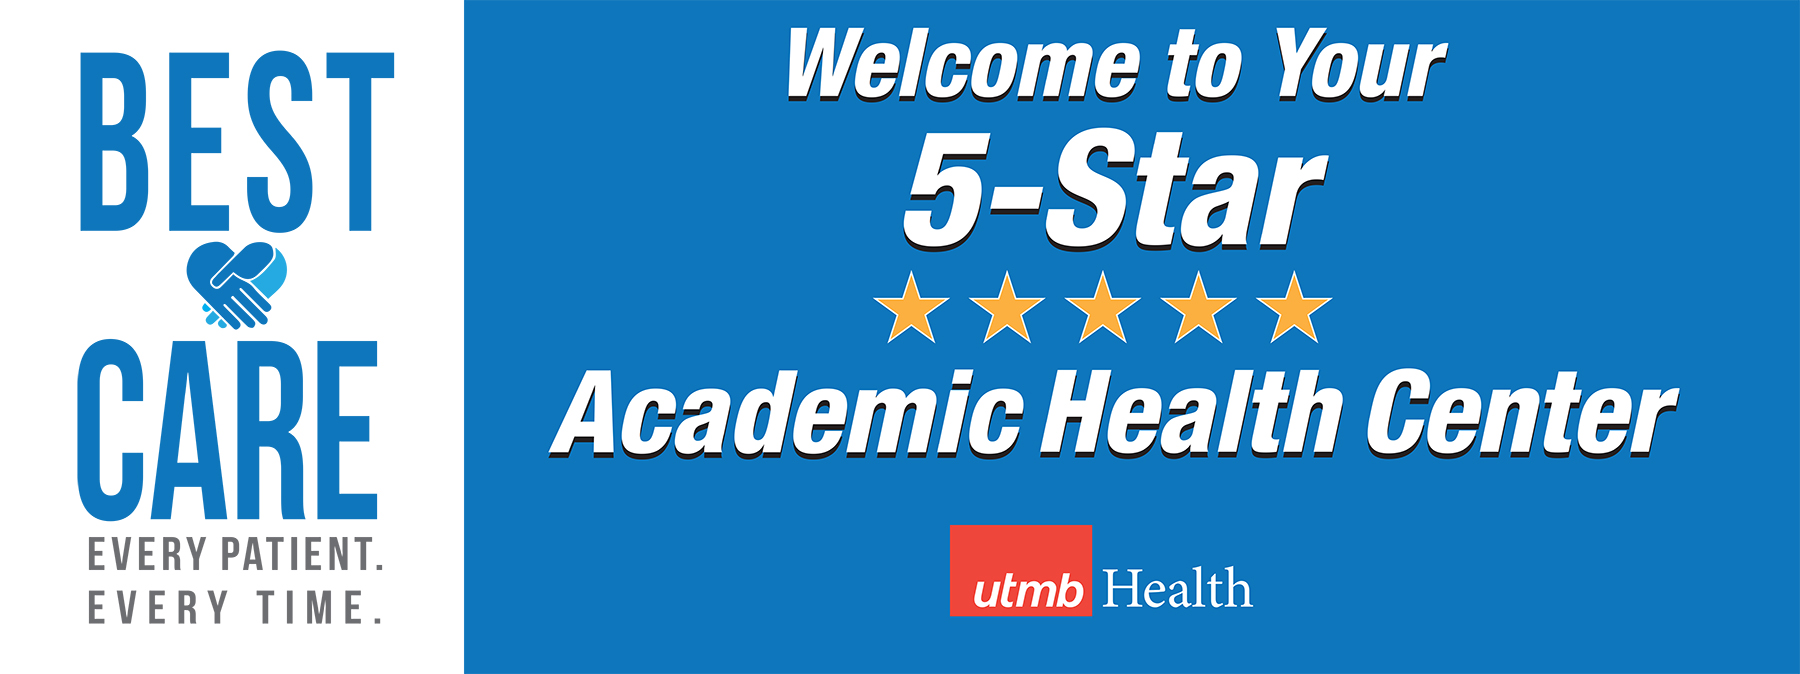 Welcome to your 5-star academic health center (banner)